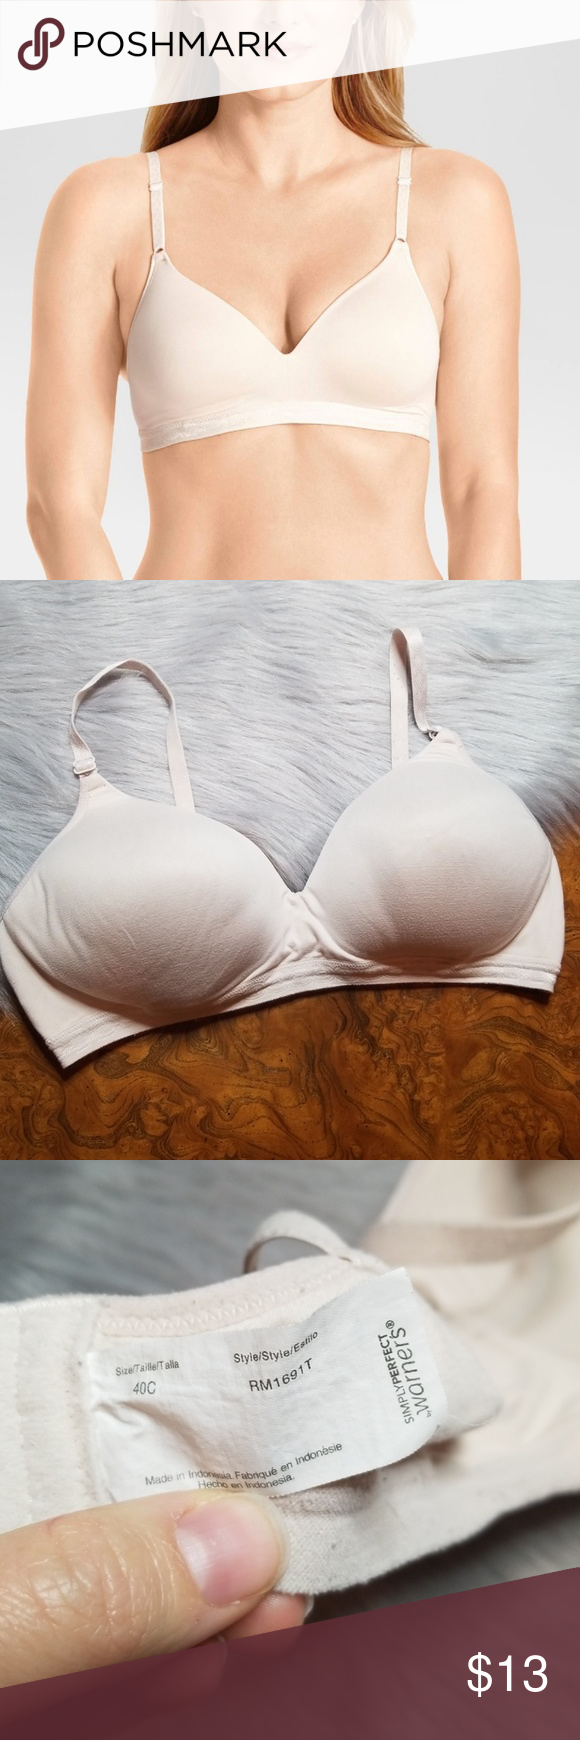 0b0d97abb6 Warner s Simply Perfect Super Soft Wire-Free Bra ➕ Good used condition  Simply  Perfect